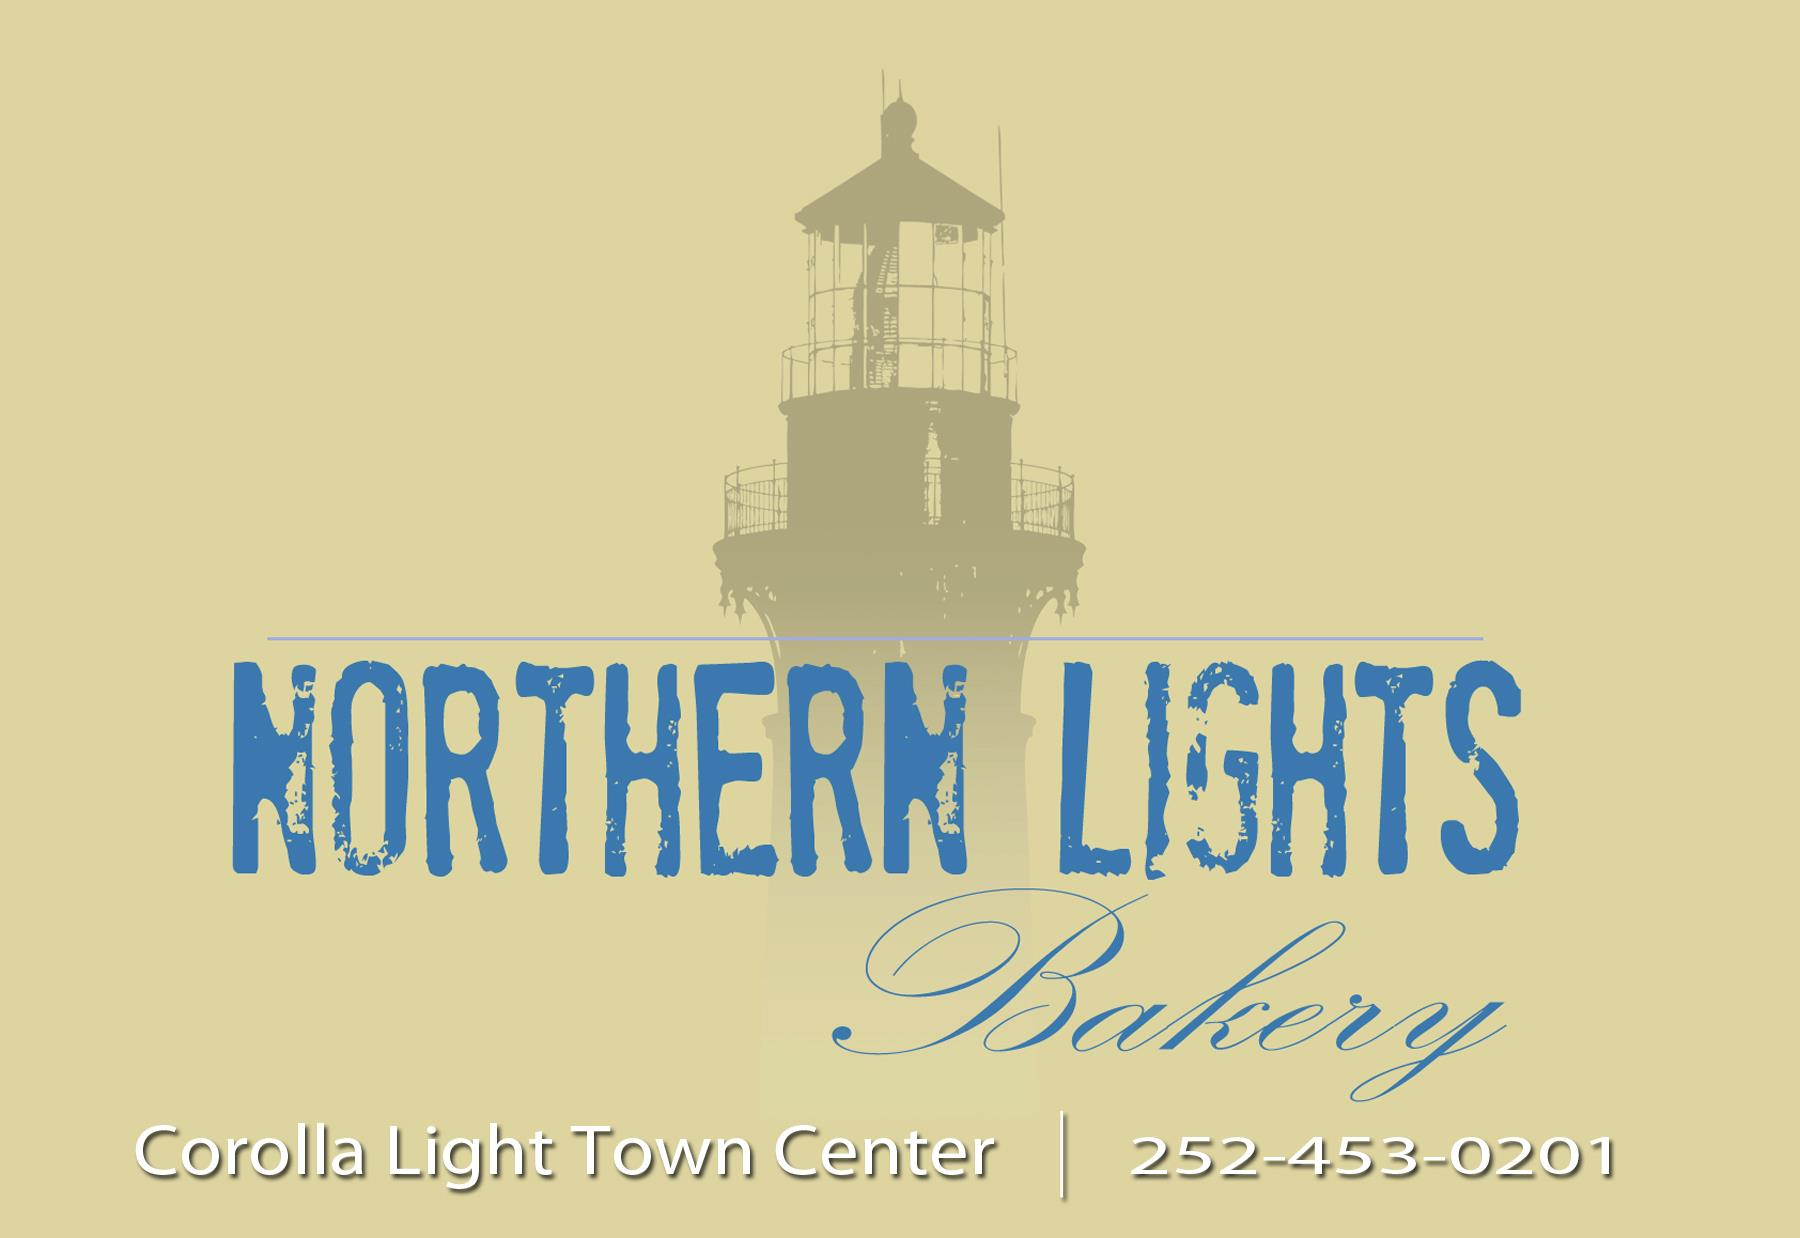 Northern Lights Bakery Corolla Light Town Center  1159 Austin St. #109A Corolla, North Carolina 27927 Bakery 252-453-0201 or Mobile 480-277-5499